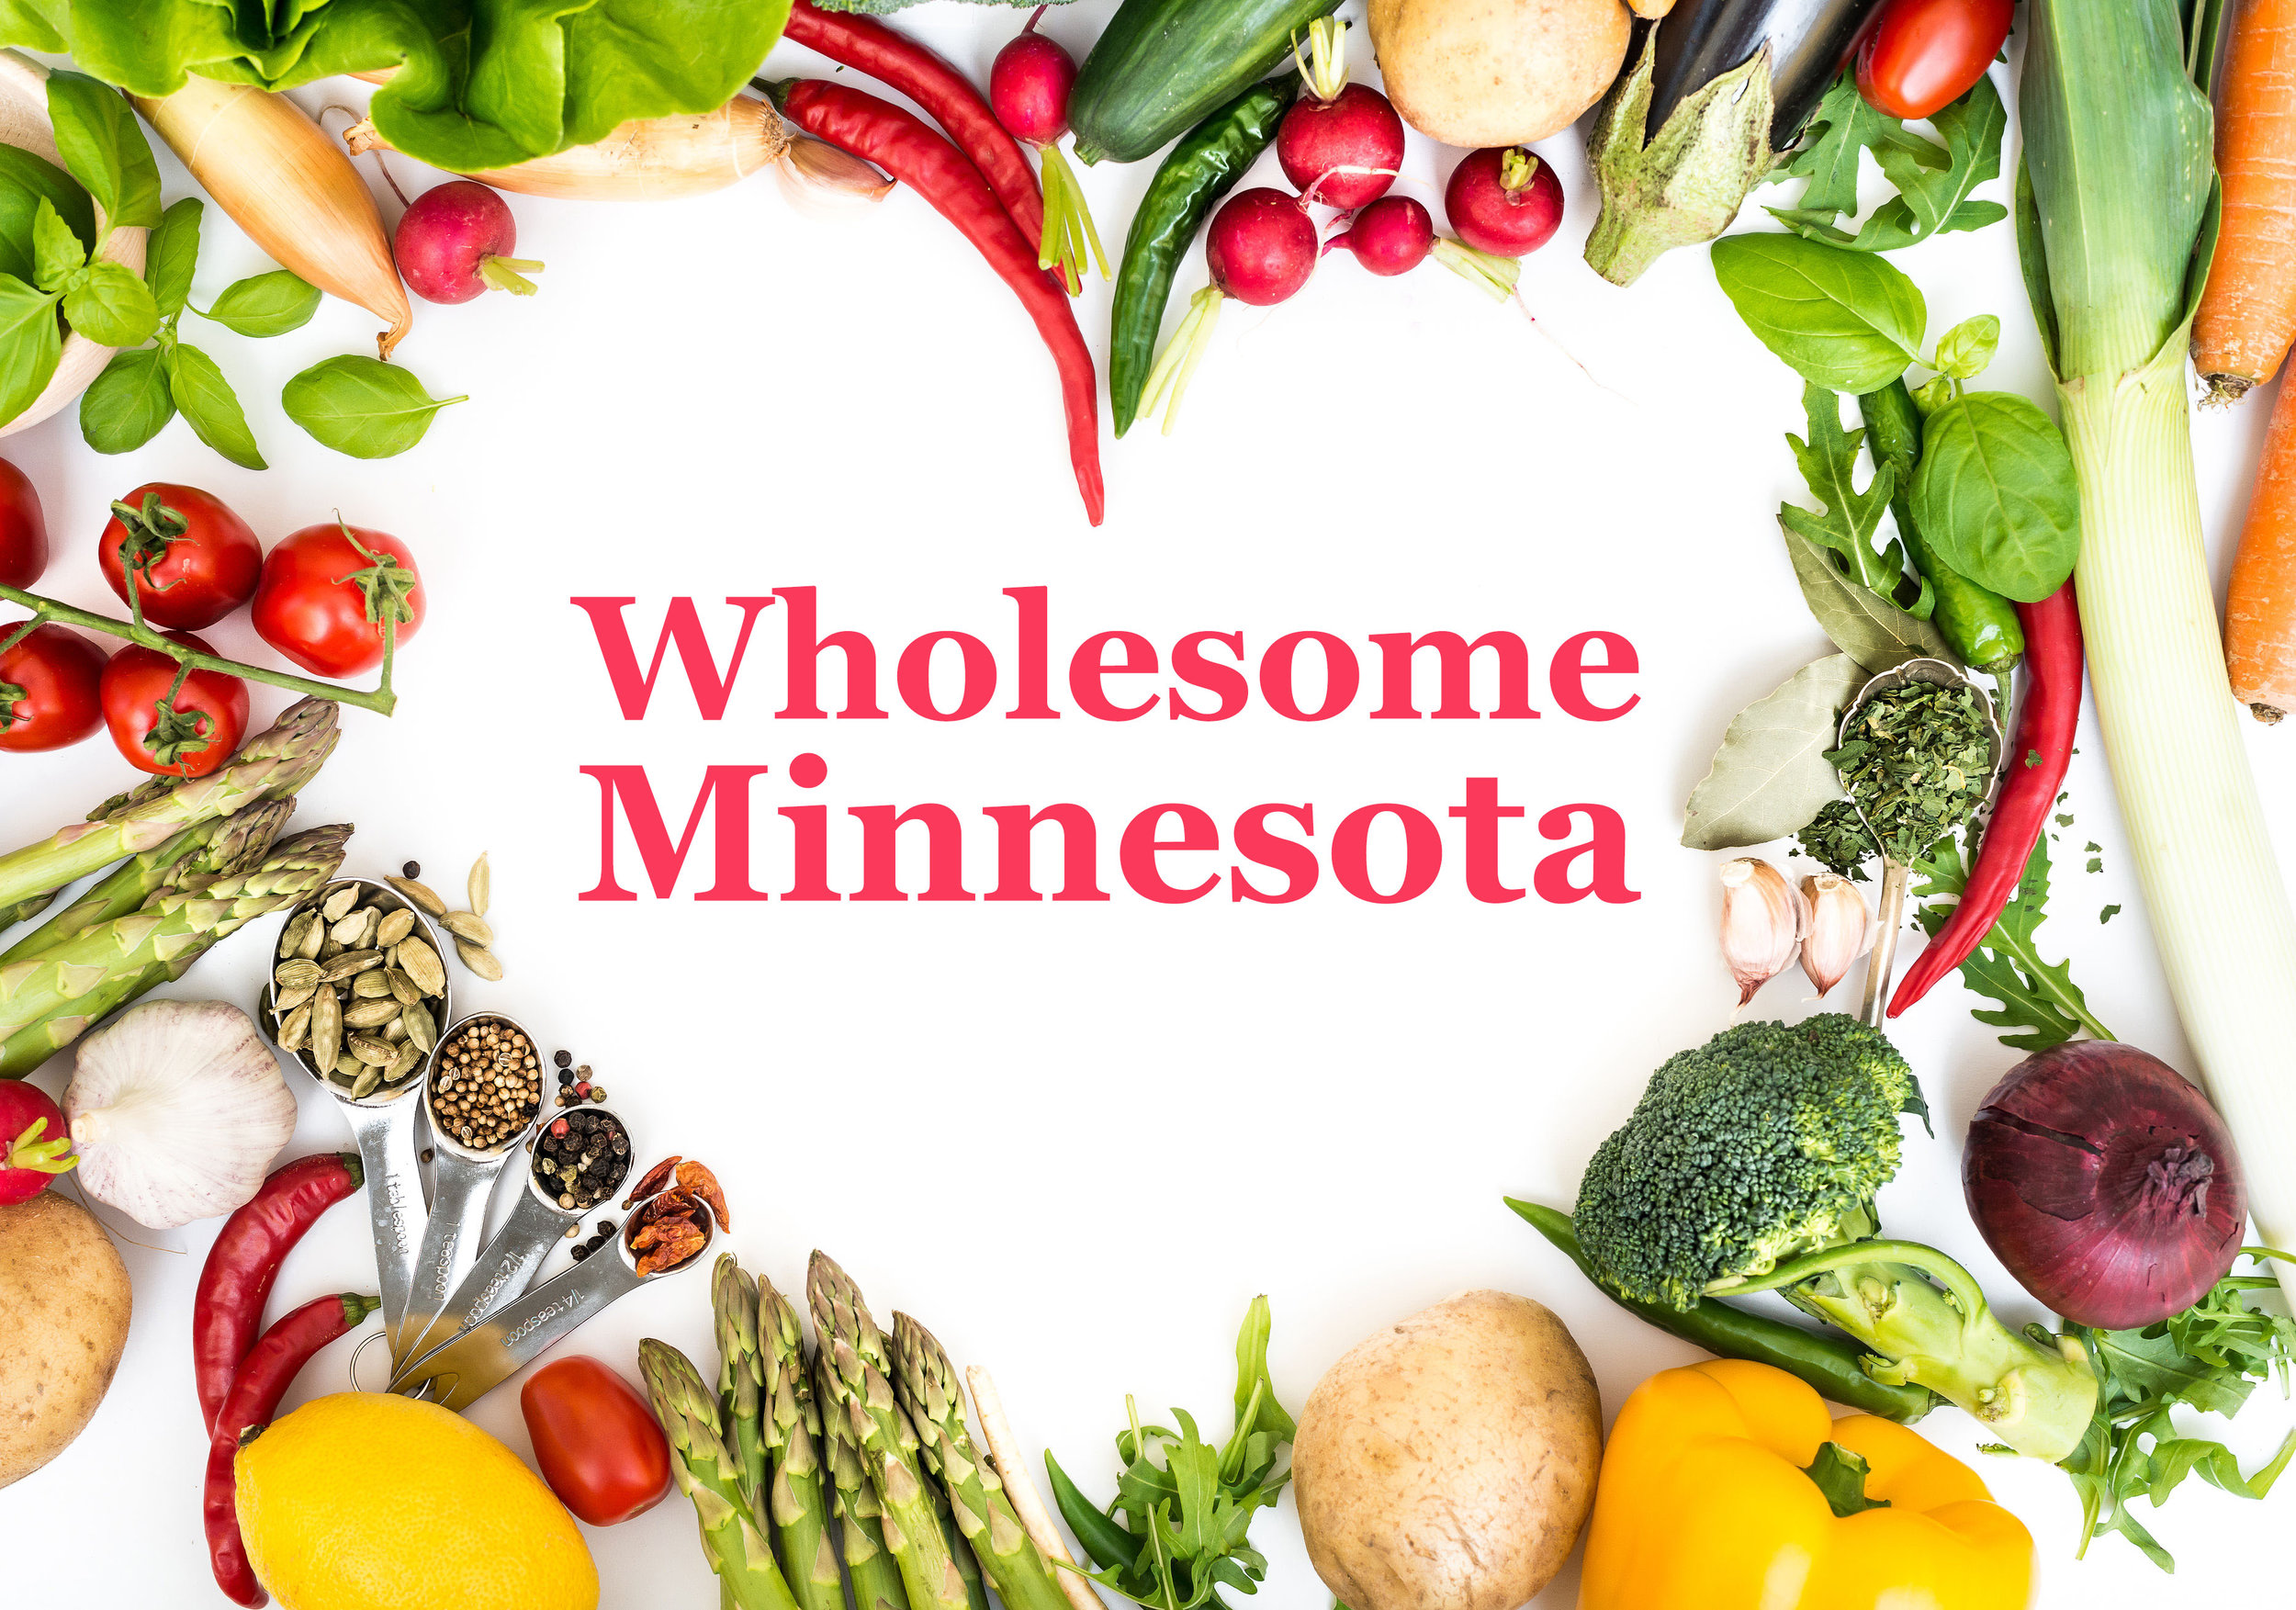 Pushing for Institutional Change - Our most recent Grantee, Compassionate Action for Animals, has established a new program called Wholesome Minnesota whose aim is to reduce the consumption of animal products and to increase the demand for plant-based food through volunteer engagement and activism. The organization trains volunteers to contact institutions they have a personal connection with, such as a school cafeteria, nursing home cafeteria, place of worship, or restaurant, and to secure the institution's commitment to increase offerings of or support for plant-based meals. The goal is to reduce the amount of animal products which are currently being served while simultaneously expanding the availability of plant-based dishes, and to raise awareness about the overall benefits of plant-based eating to both institutional leaders and the general public. Time to initiate some healthy reforms!